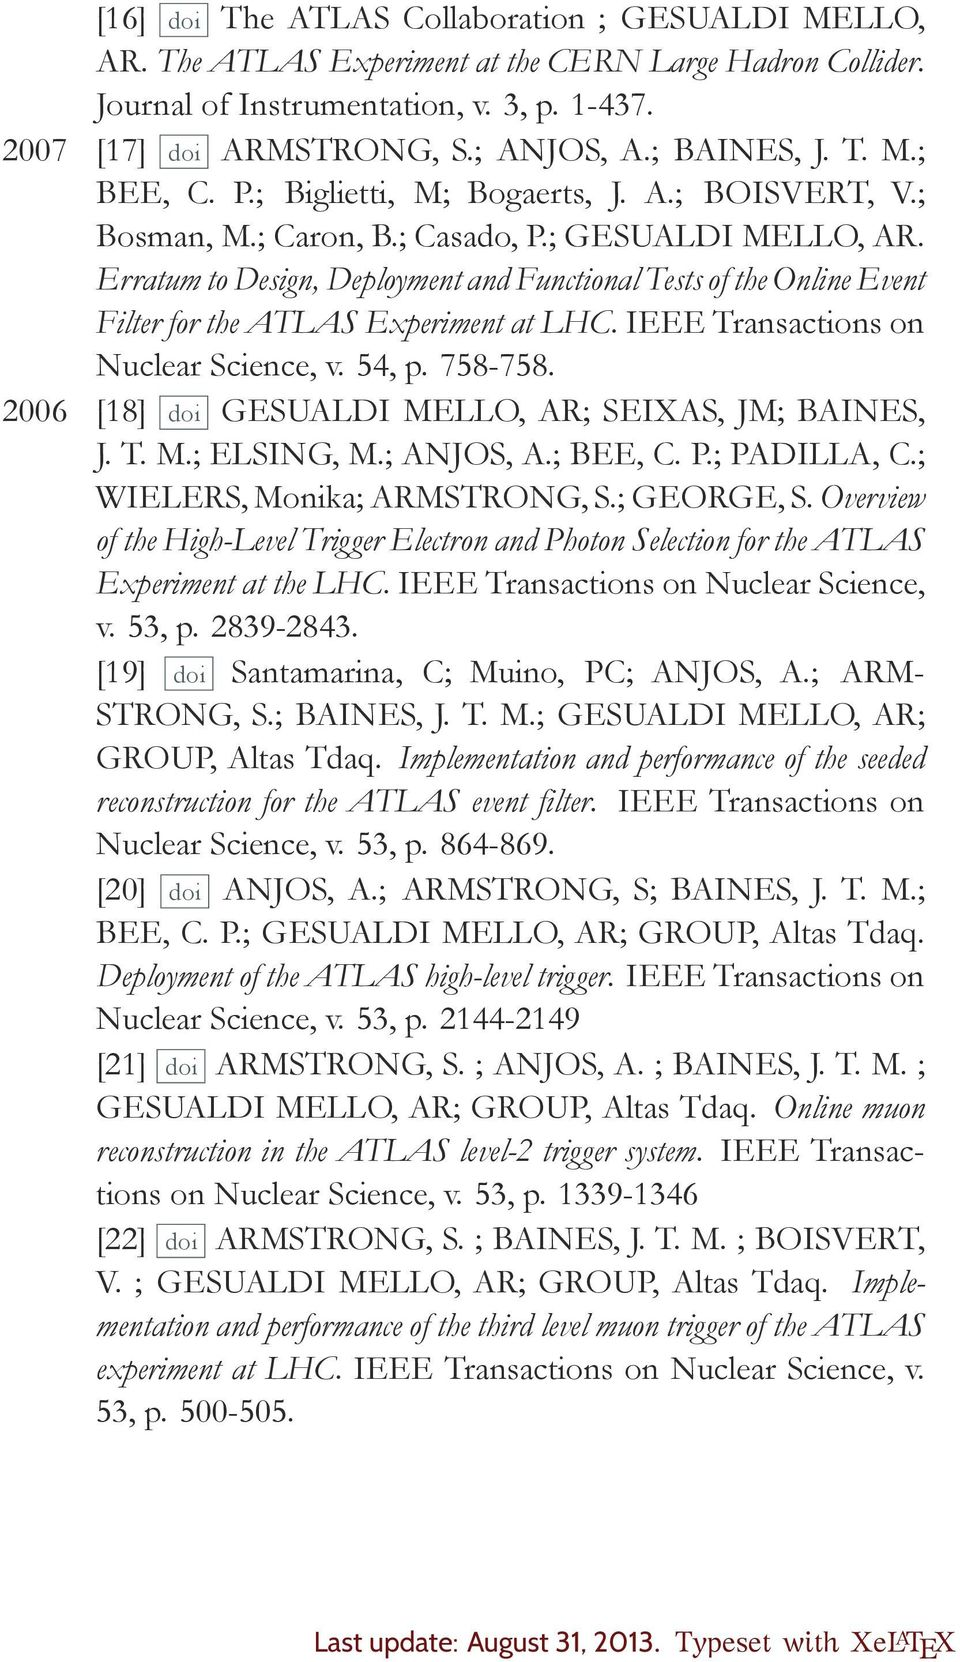 Erratum to Design, Deployment and Functional Tests of the Online Event Filter for the ATLAS Experiment at LHC. IEEE Transactions on Nuclear Science, v. 54, p. 758-758.